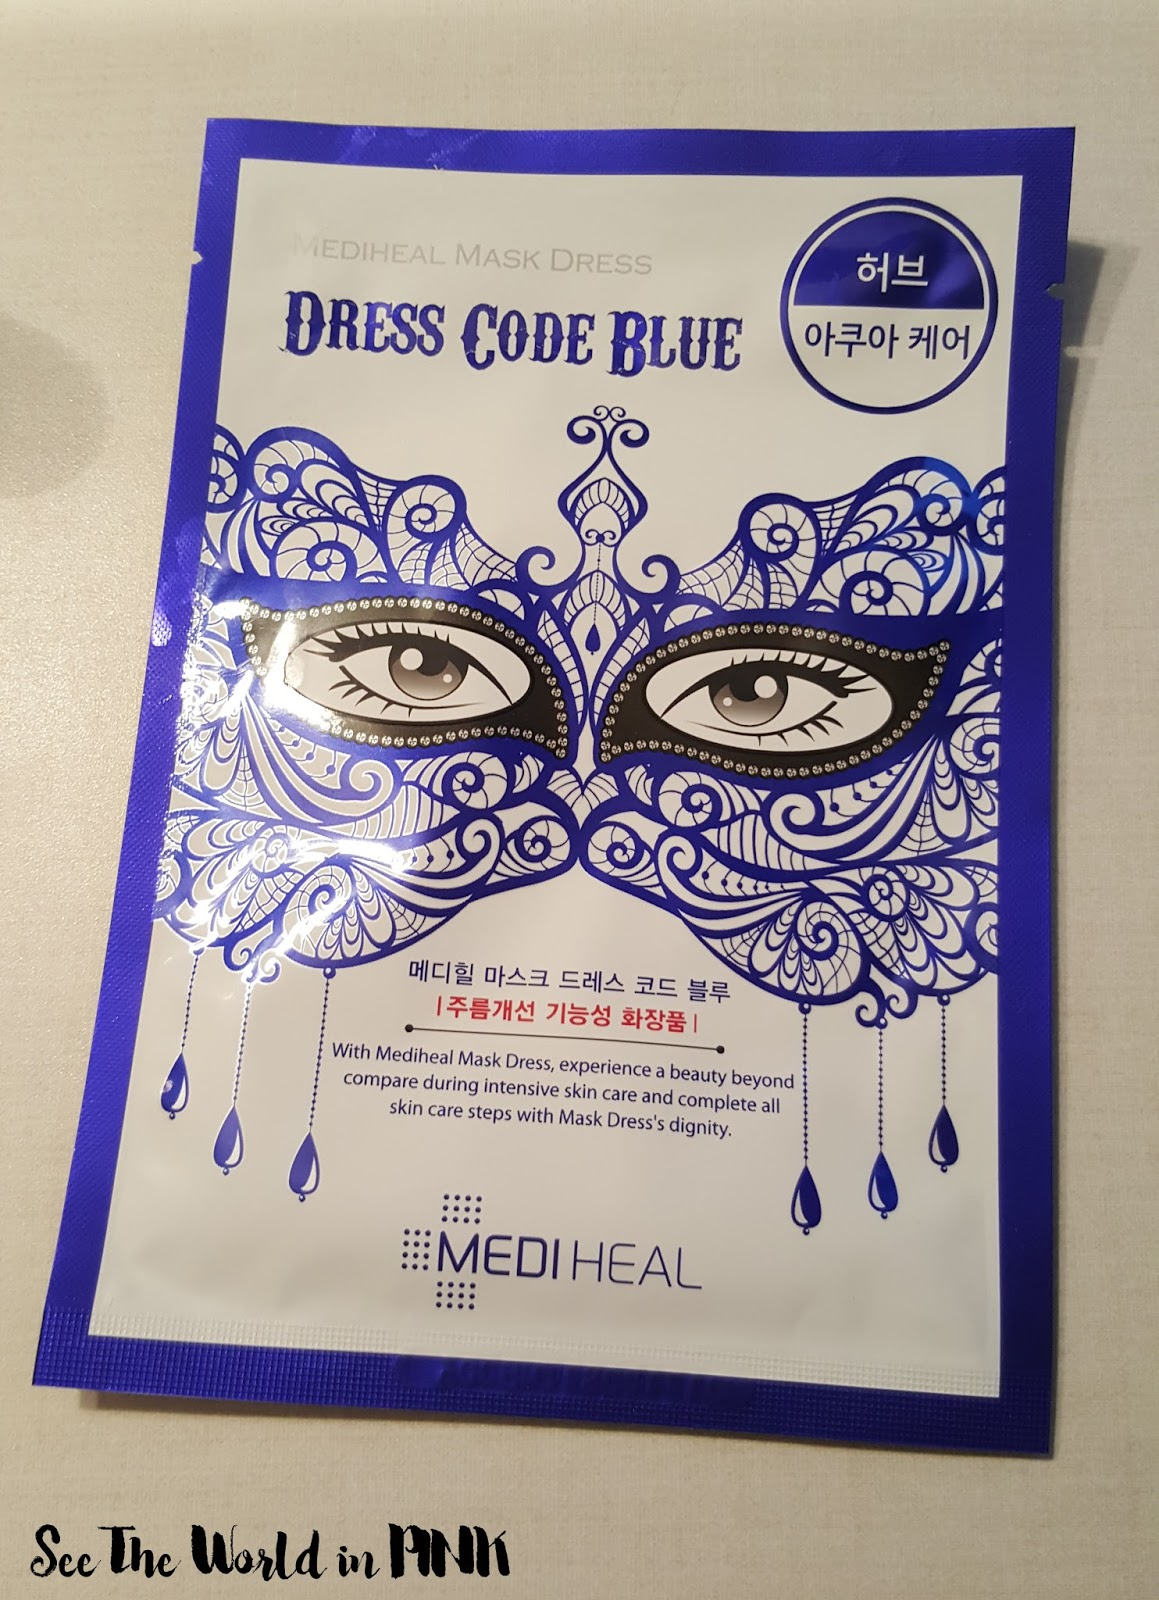 beauty clinic mediheal dress code blue mask